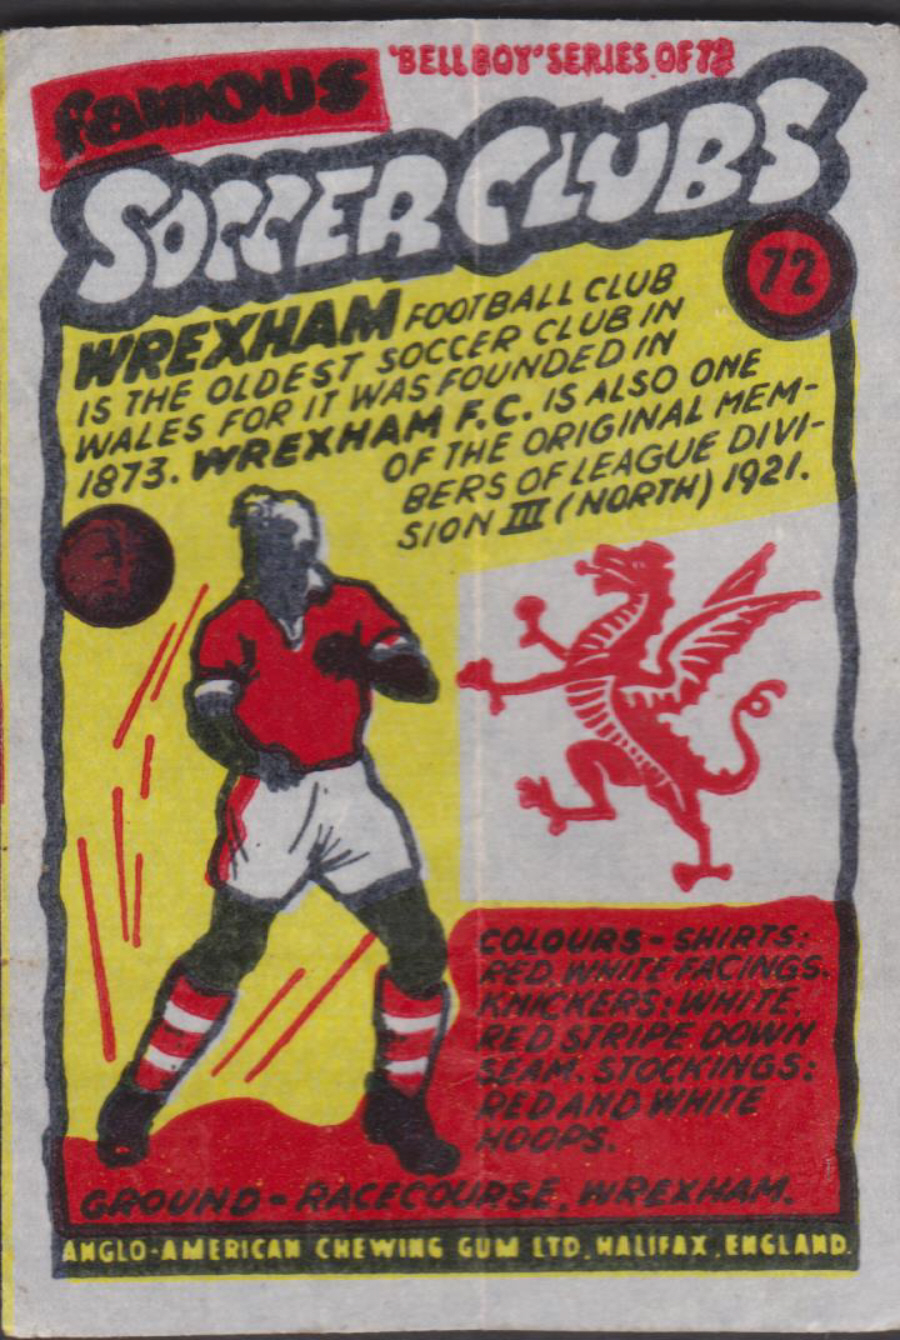 Anglo-American-Chewing-Gum-Wax-Wrapper-Famous-Soccer-Clubs-No-72 - Wrexham F C